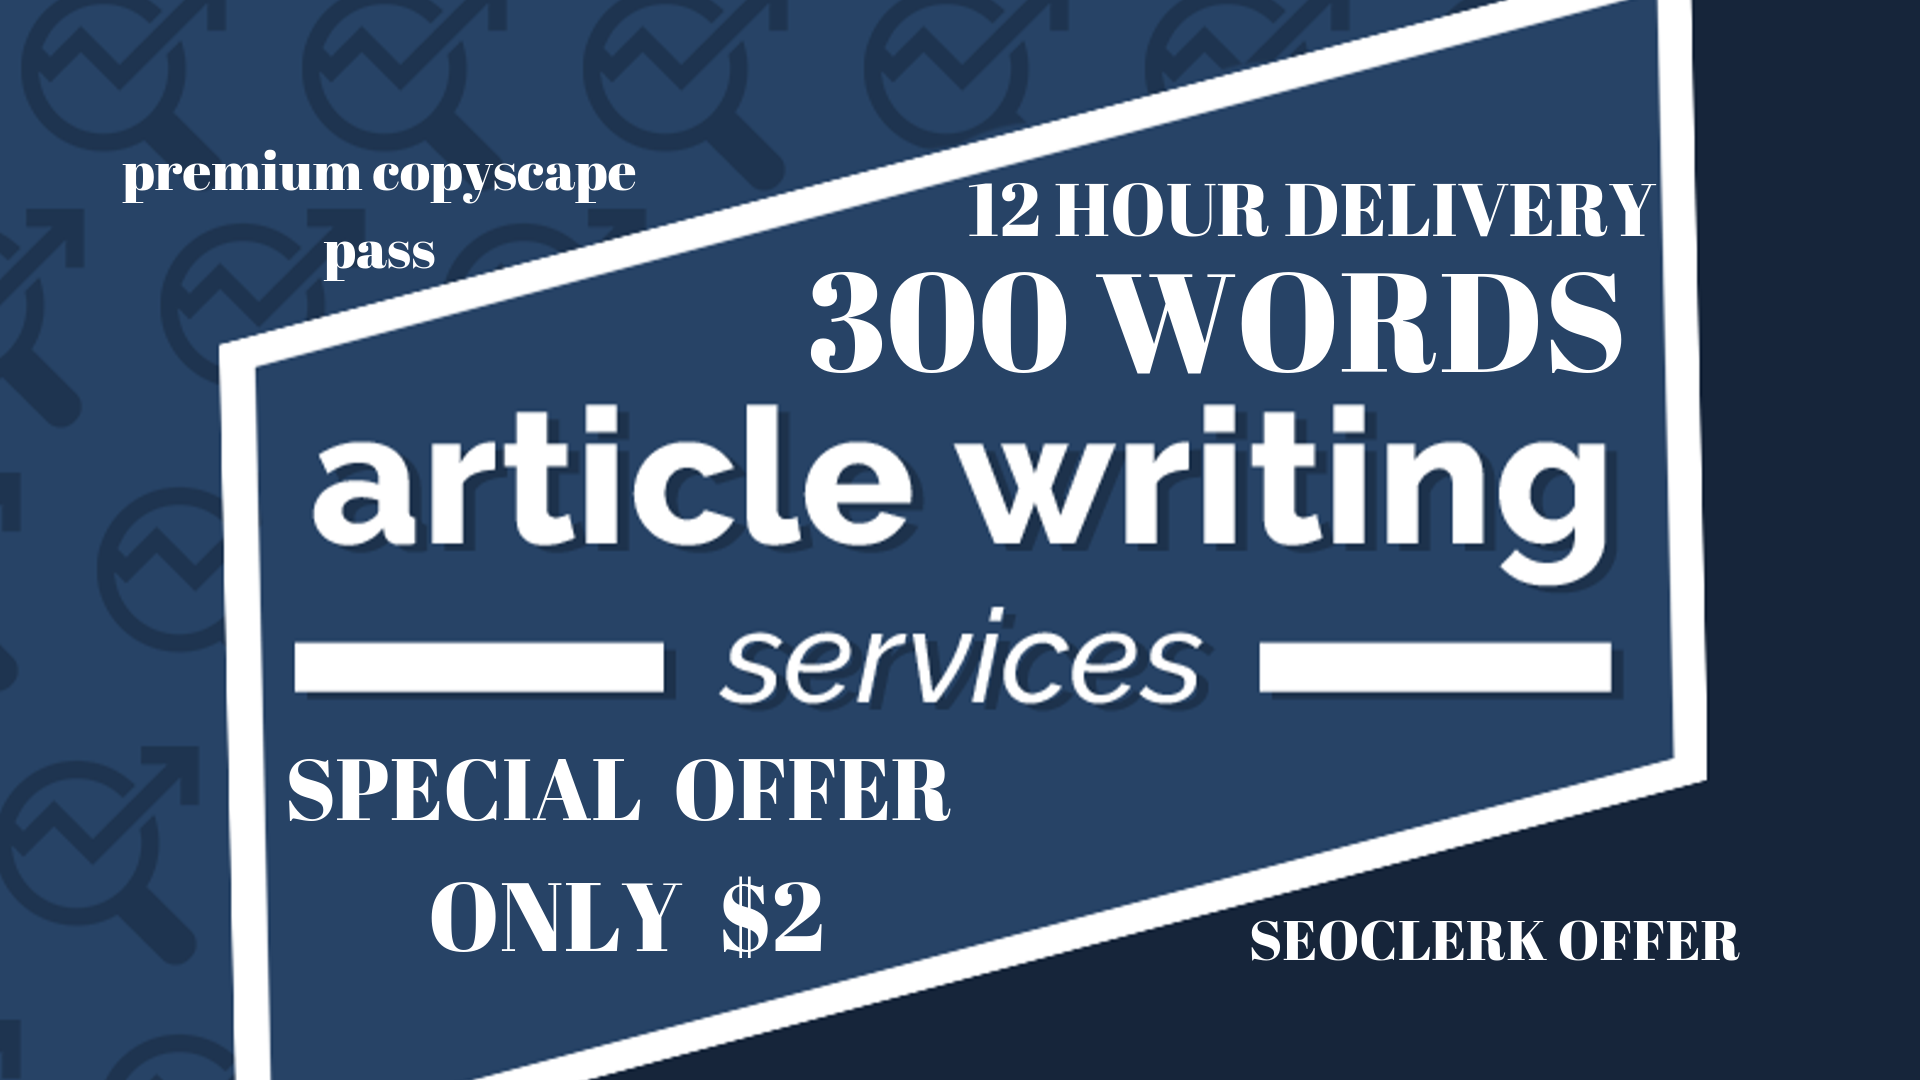 Be your unique article writer and creative content writer